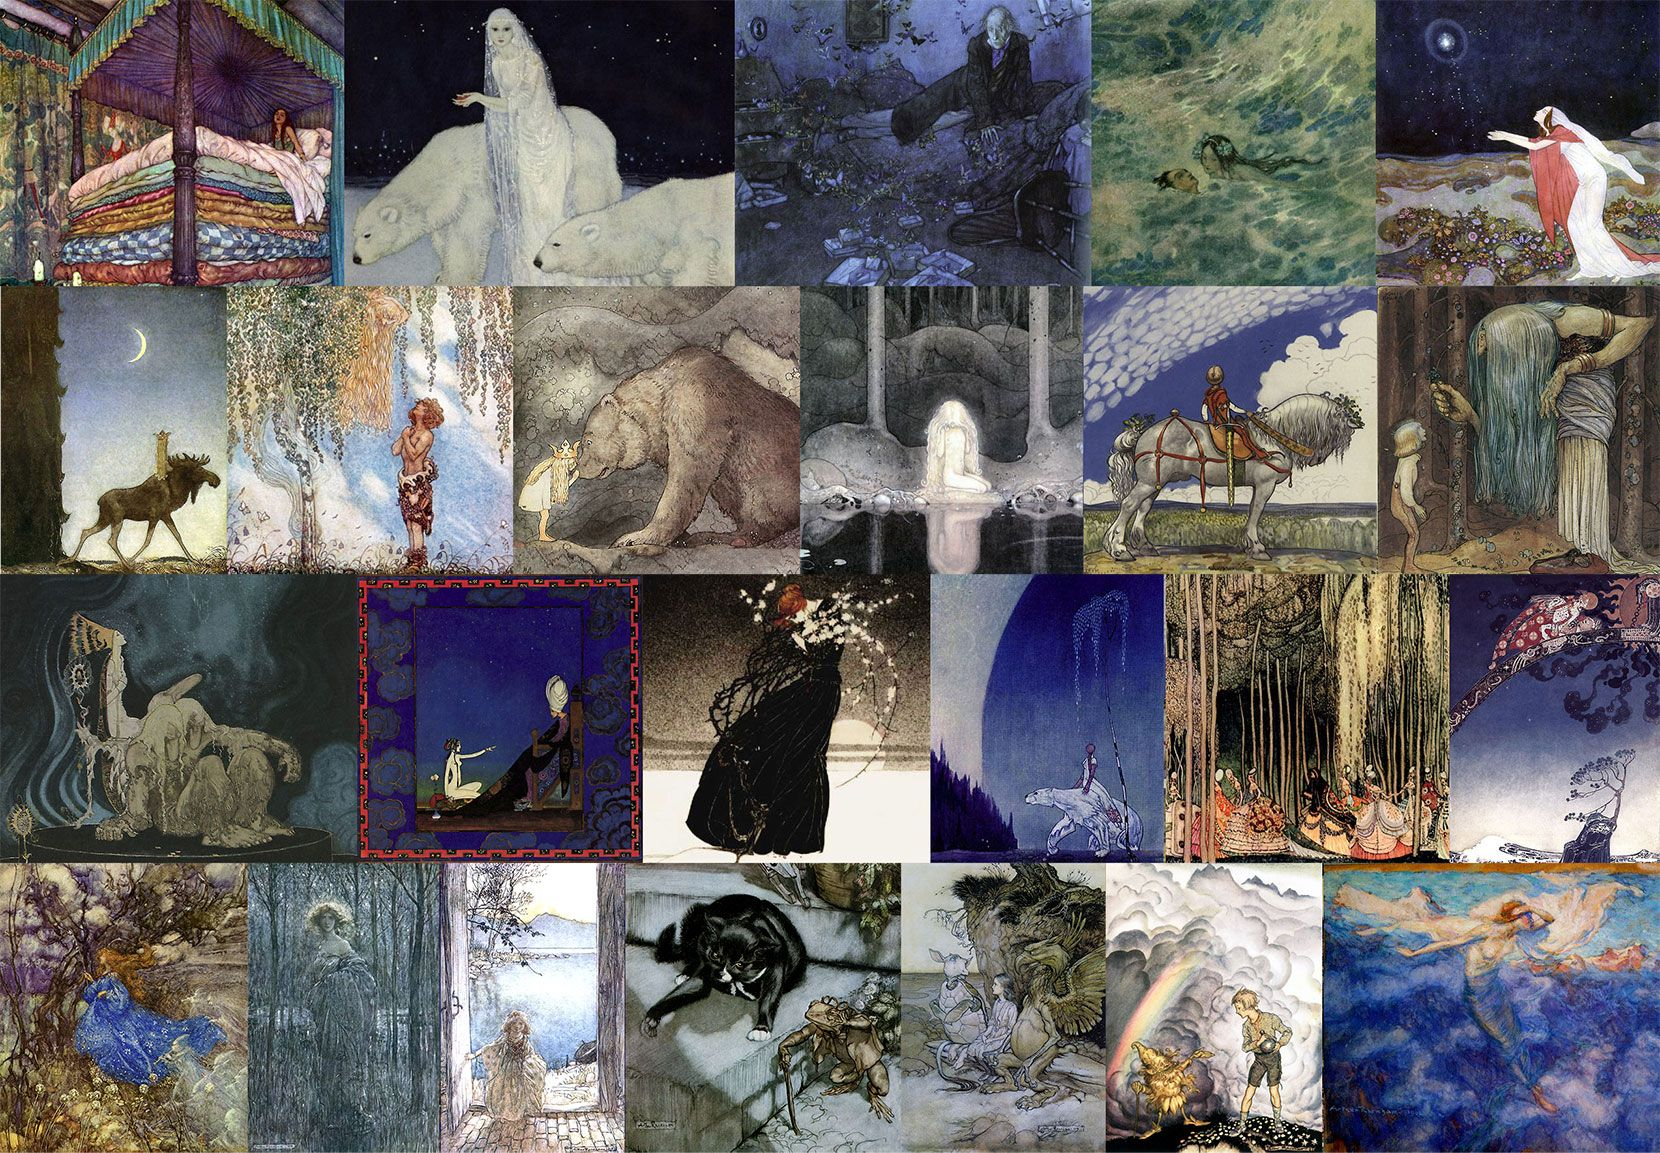 Pinned for later from artpassions.net:  Top Row: Edmund Dulac - Real Princess, Dreamer of Dreams, Entymologist's Dream, Little Mermaid, Stealers of Light.  Second Row: John Bauer - Leap the Elk, He Found Her Hiding ir, Poor Cecco, Alice in Wonderland, King of the Golden River, Alpine Rest